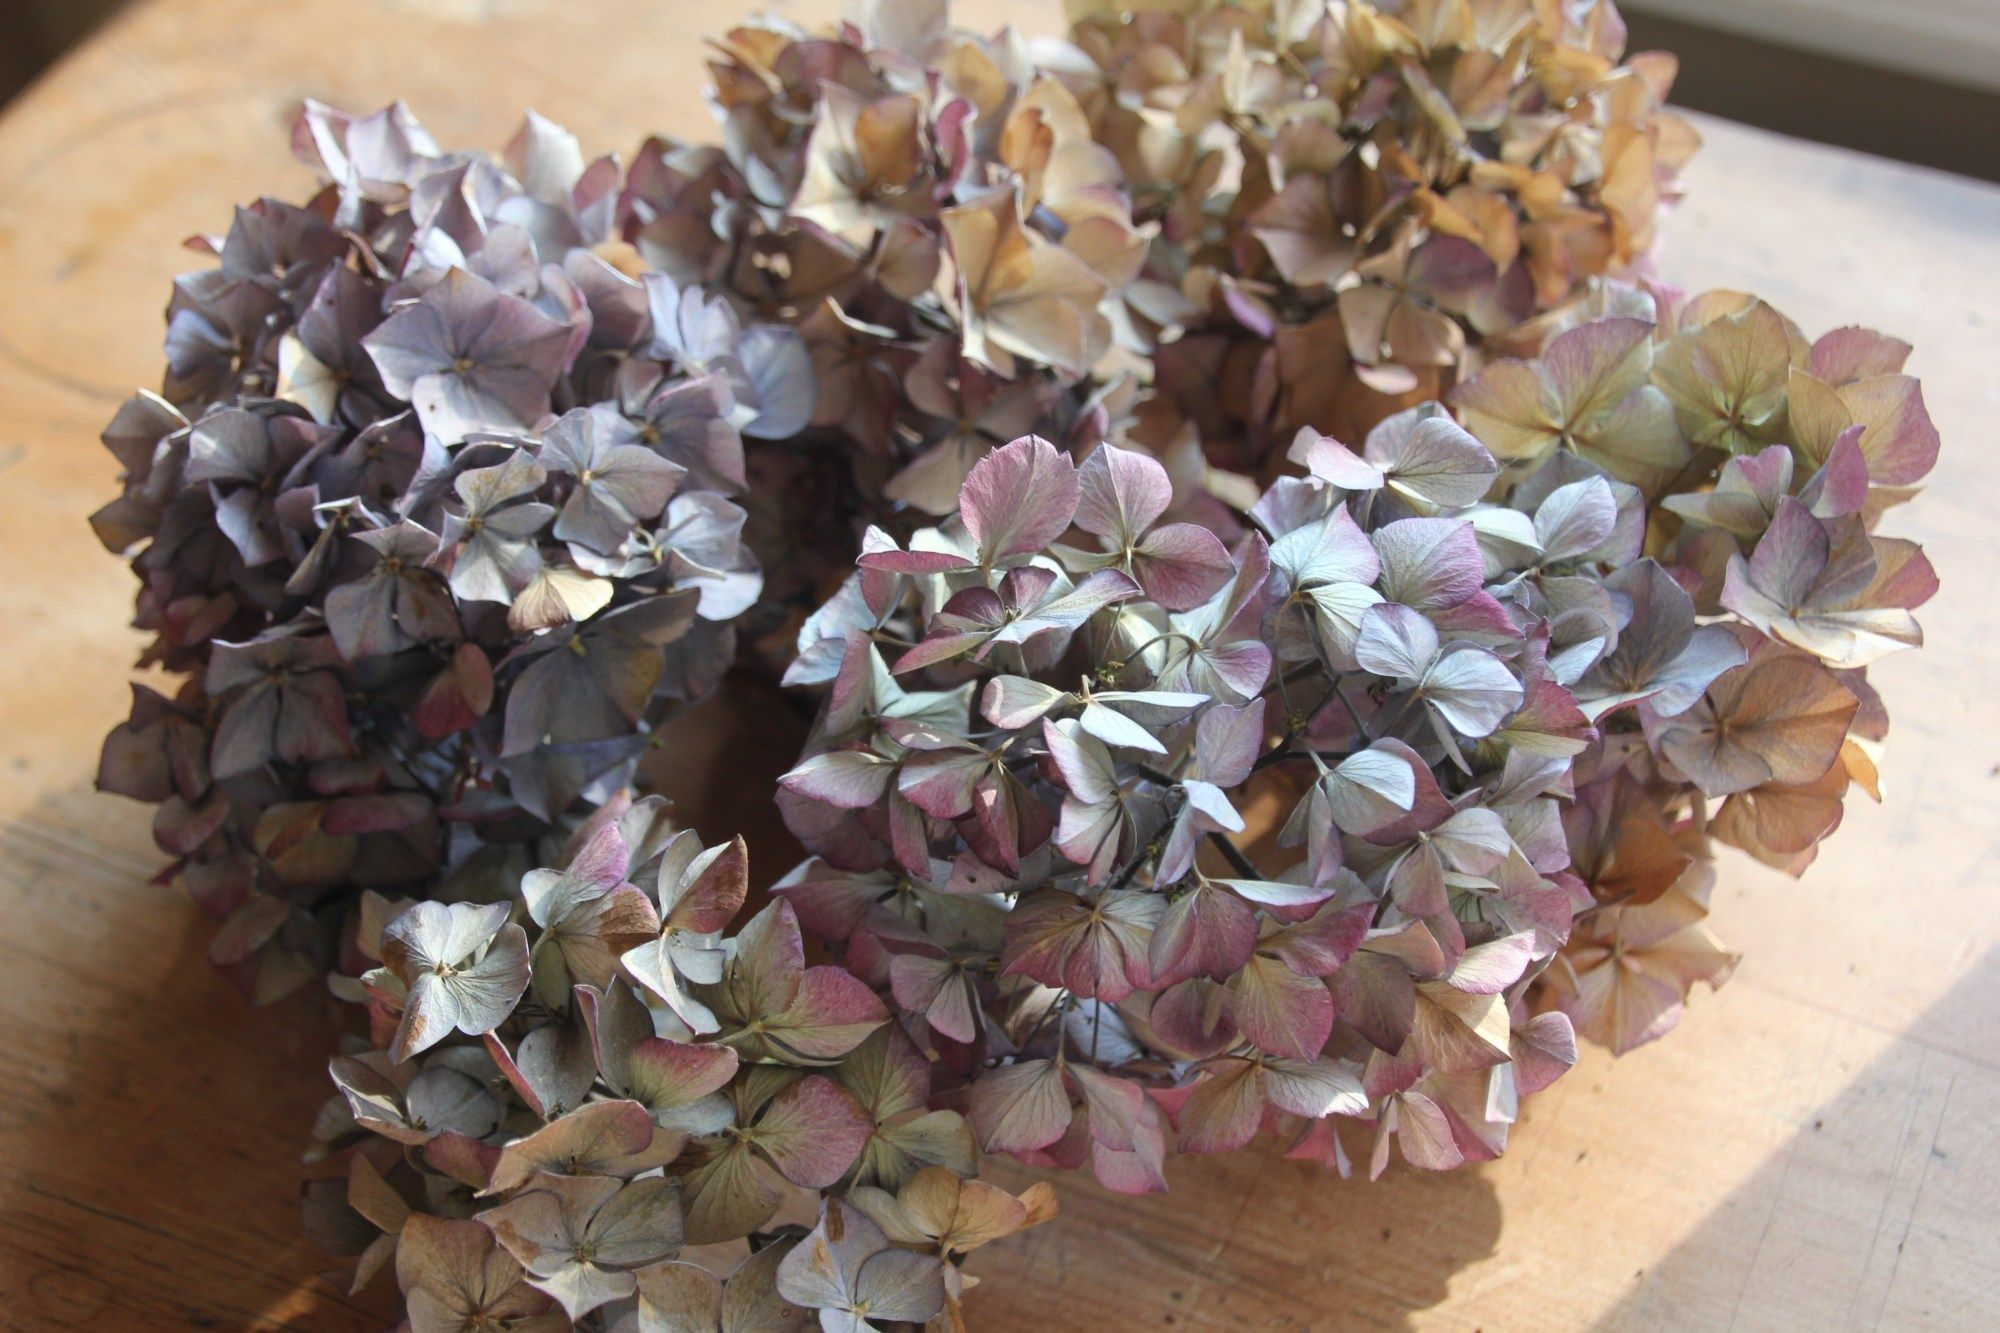 How To Dry Hydrangeas And Make A Dried Hydrangea Wreath Dried Hydrangeas Dried Flowers Diy Dried Wreath